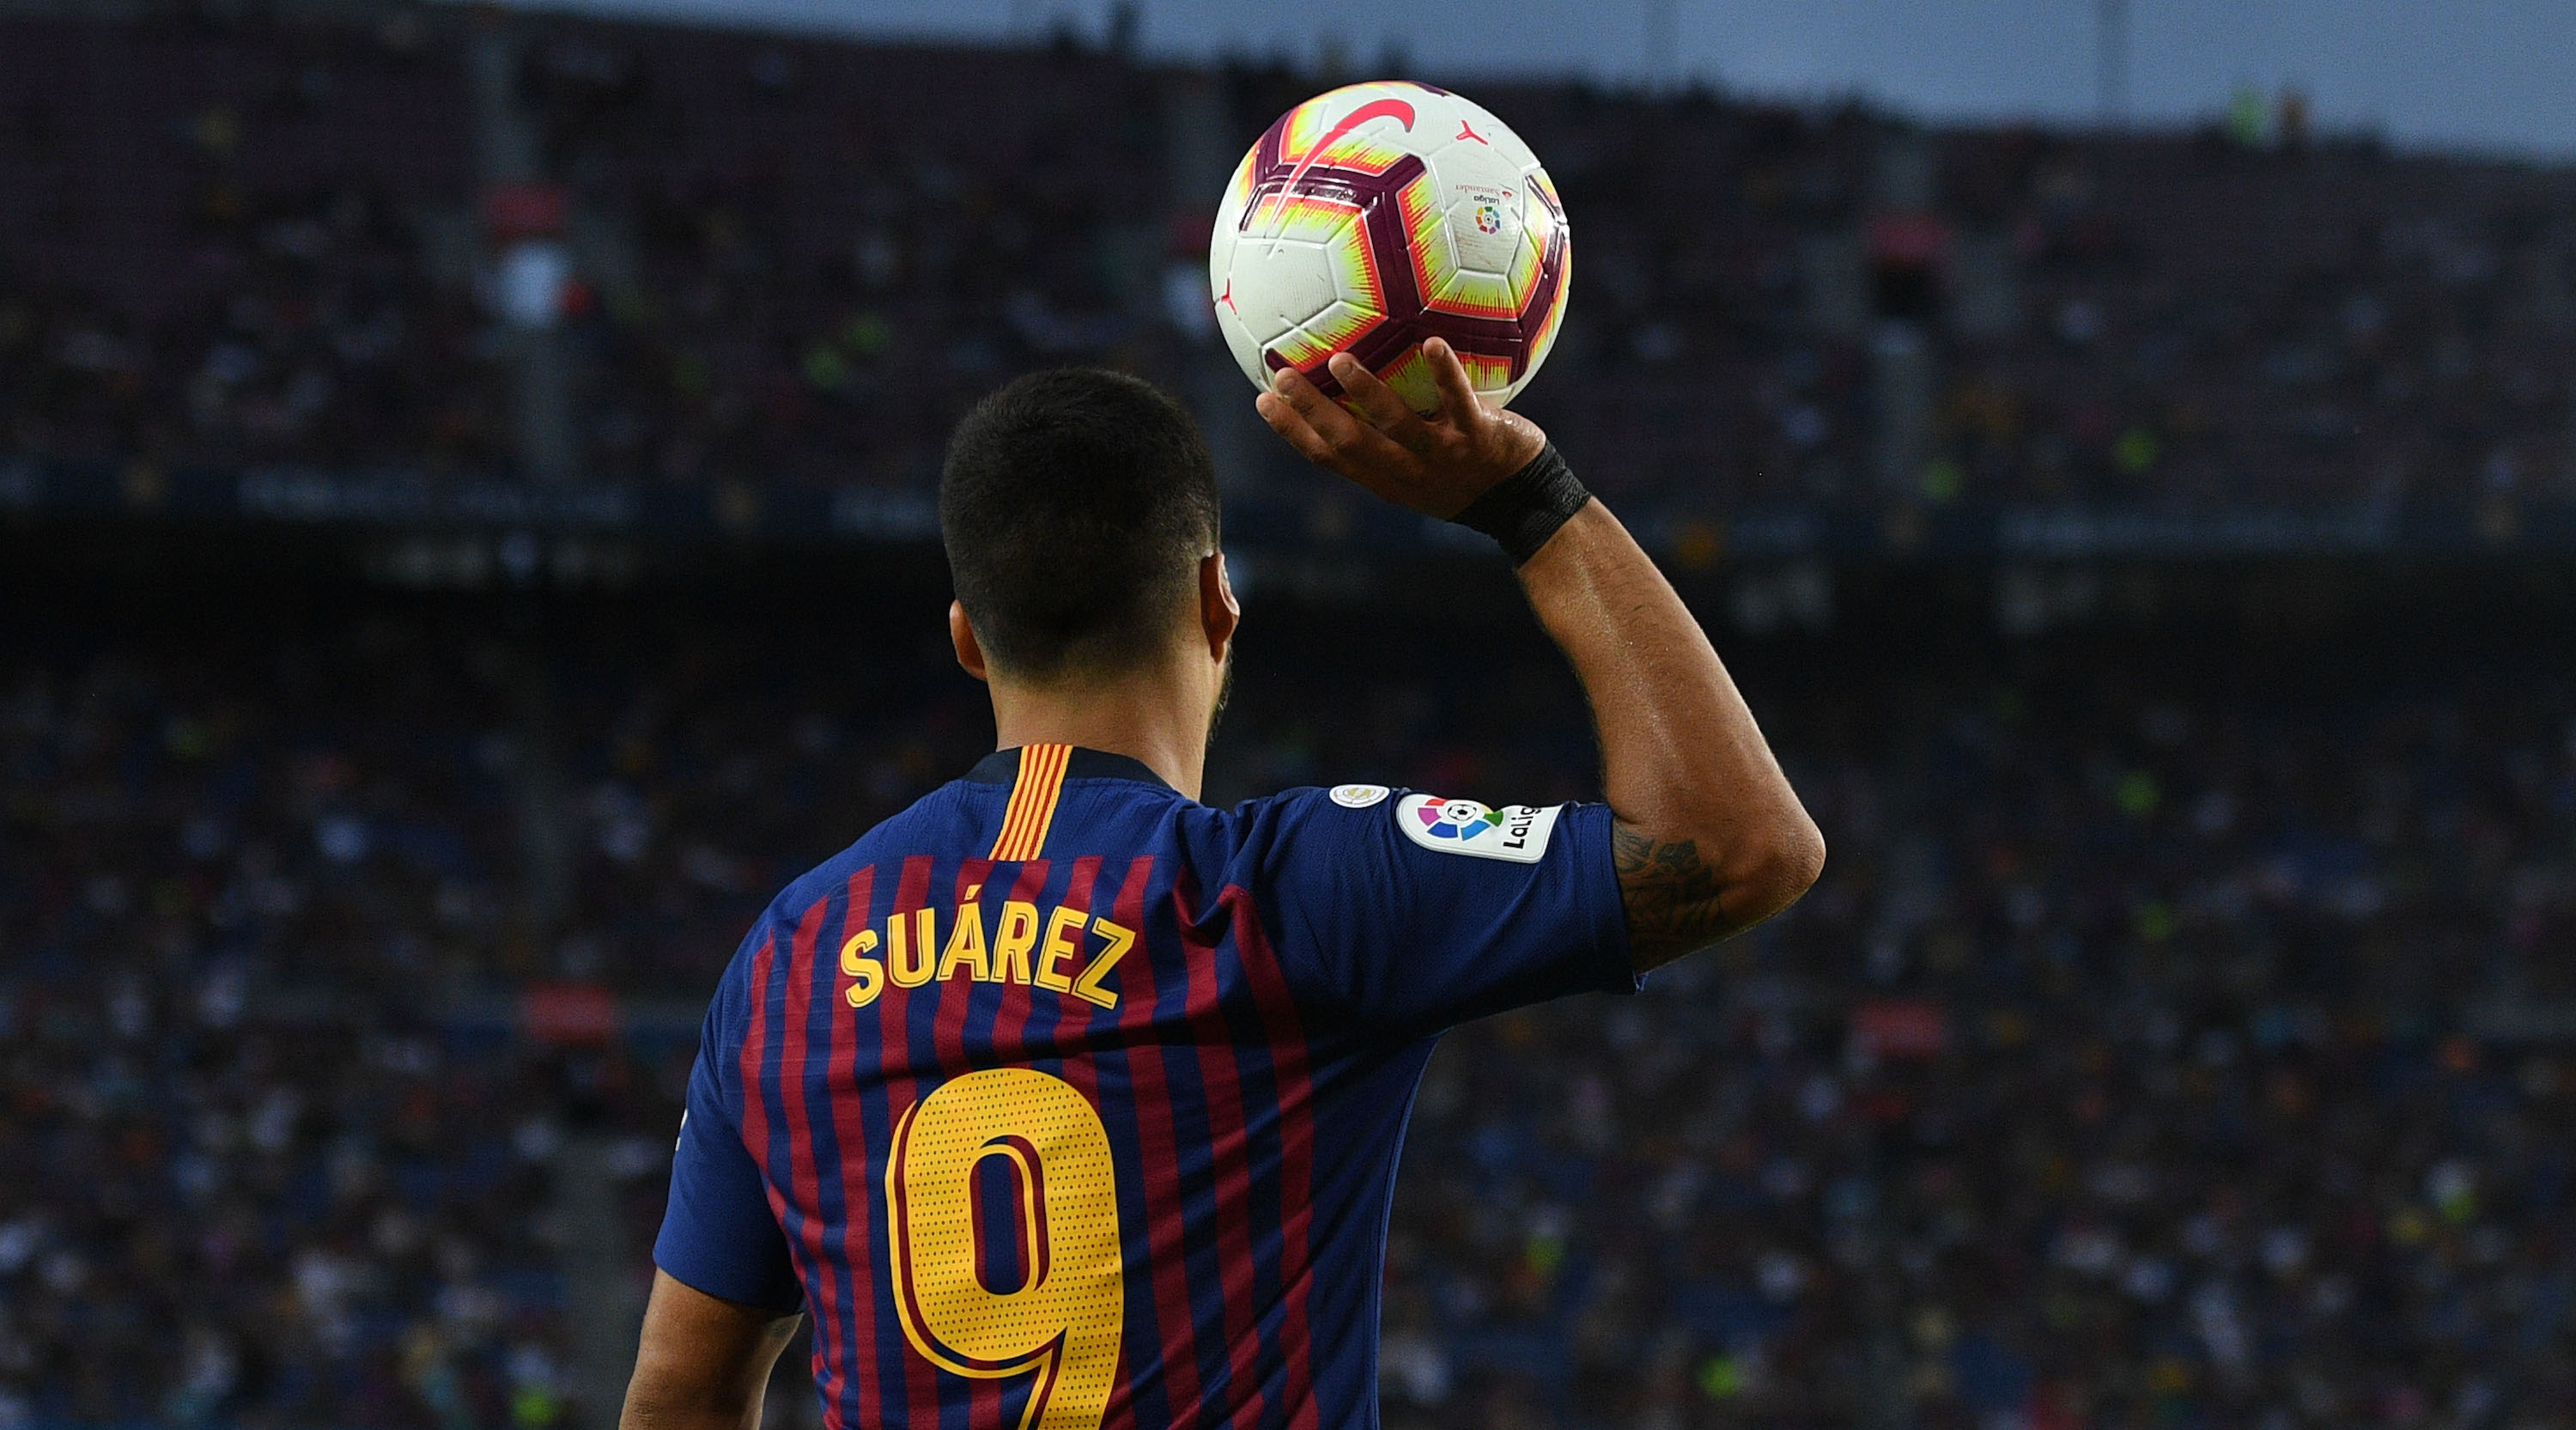 Luis Suarez of FC Barcelona grabs the ball during the La Liga match between FC Barcelona and SD Huesca at Camp Nou on September 2, 2018 in Barcelona, Spain. (Photo by David Ramos/Getty Images)